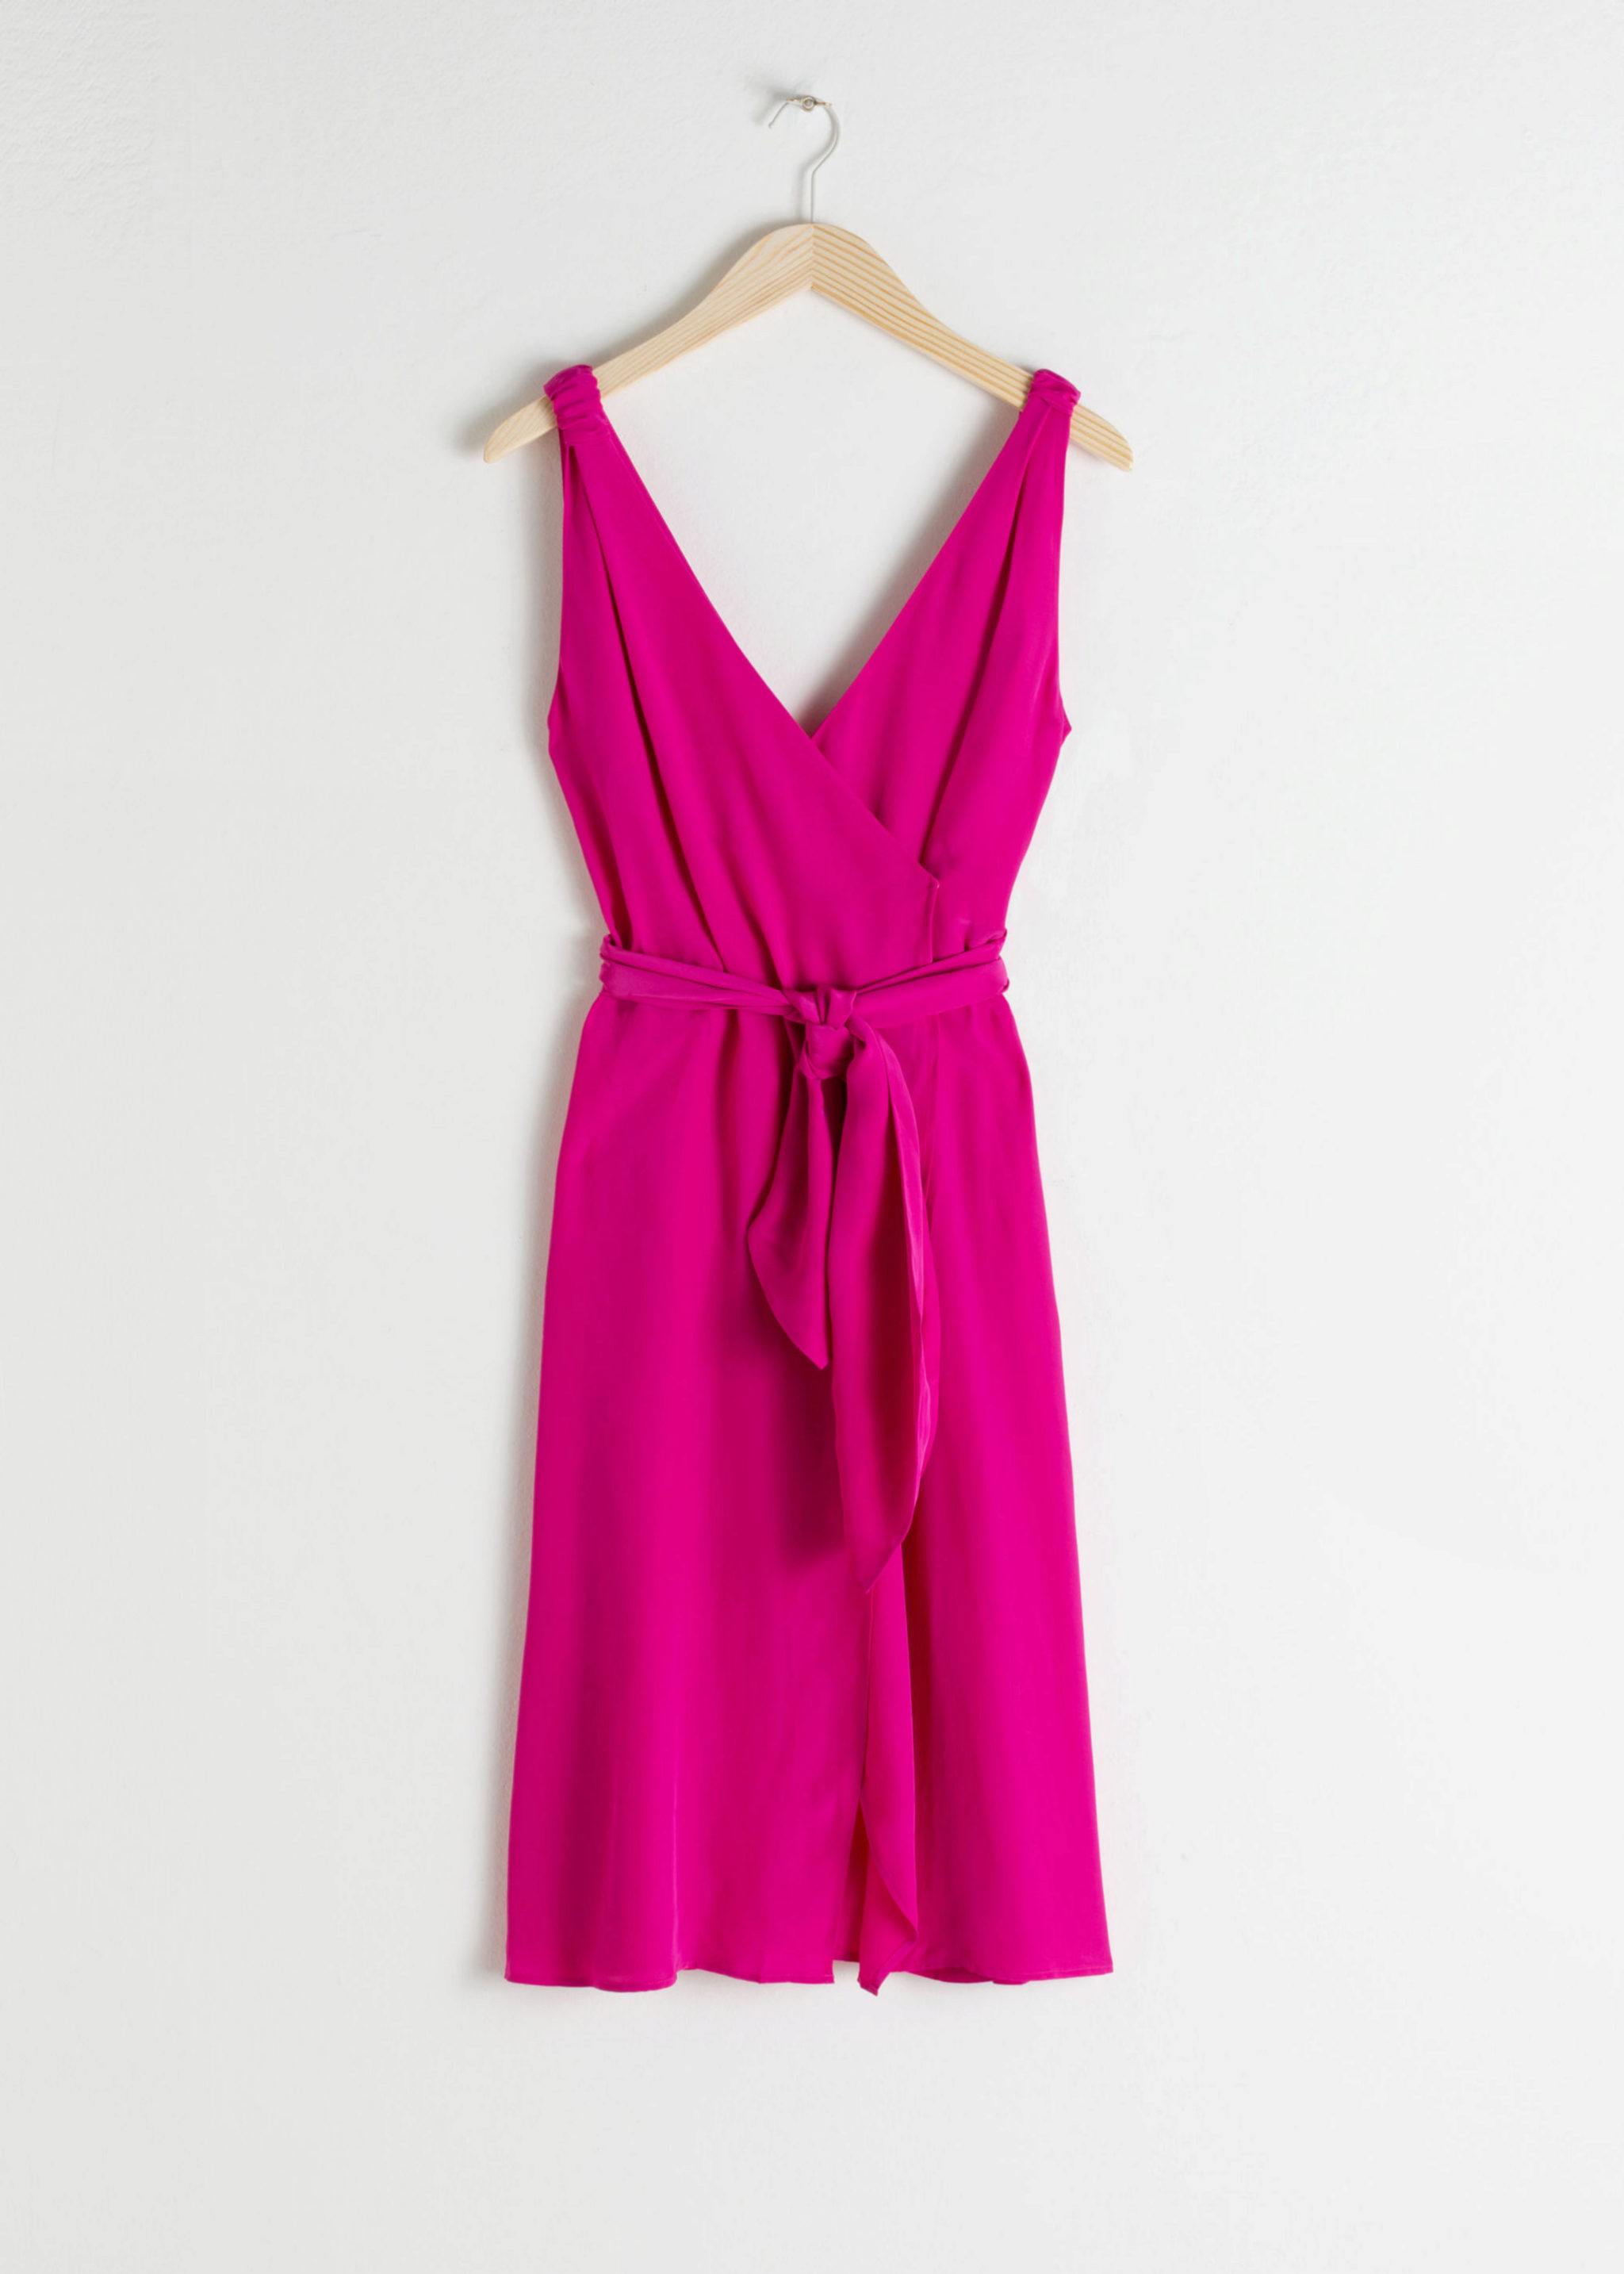 Vestido tipo wrap en rosa fucsia de & Other Stories